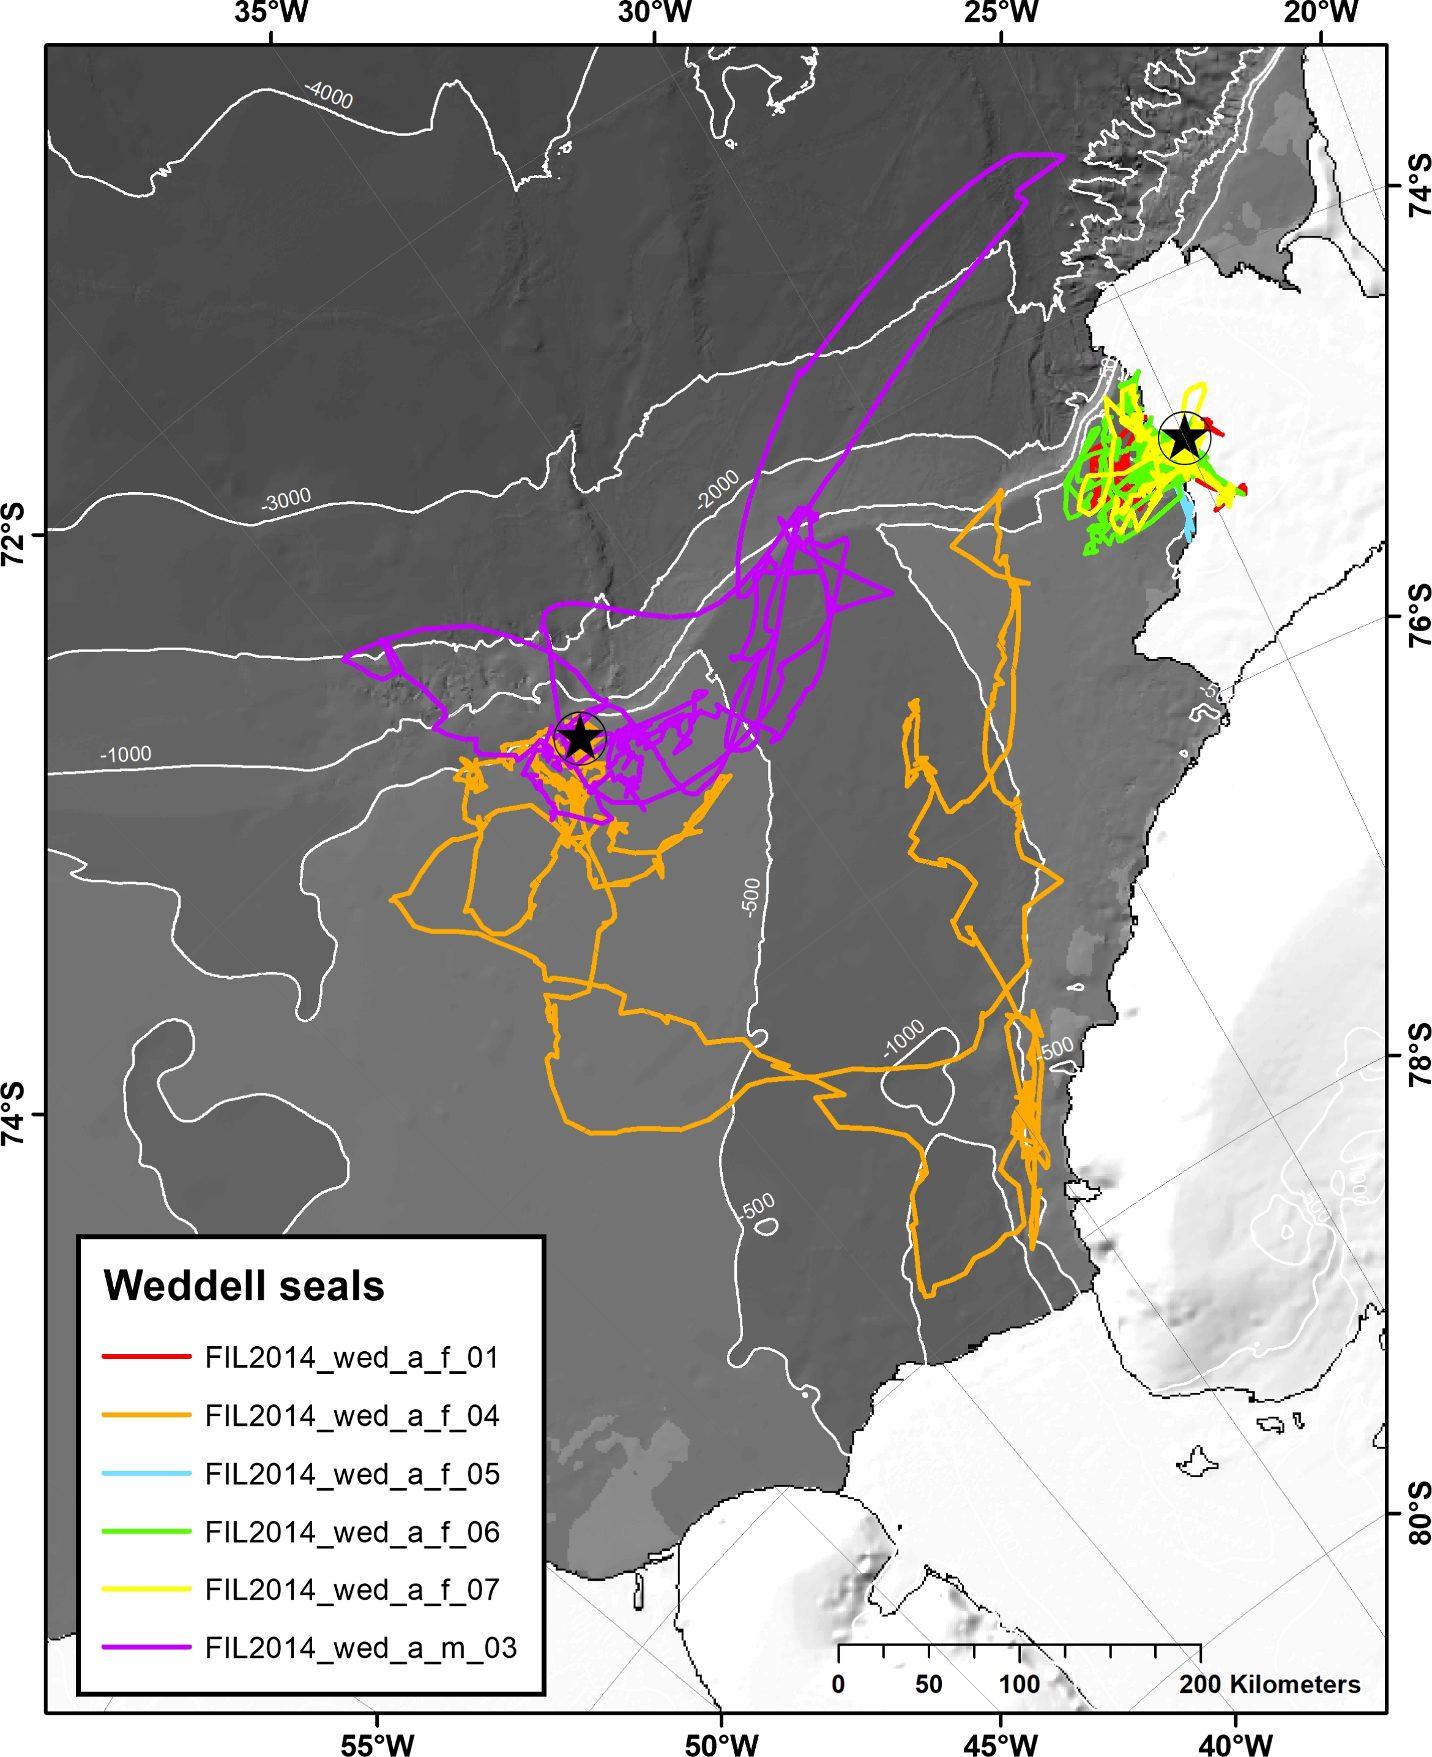 The six Weddell seals' tracks. Seals tagged in the pack ice of the Filchner Outflow System (left star) focussed their foraging activities to the western and, partly, eastern flank of the Filchner Trough. In contrast, Weddell seals tagged on the coastal fast ice (star at the right) exhibited typical central-place foraging and utilized resources close by. (Credit AWI)